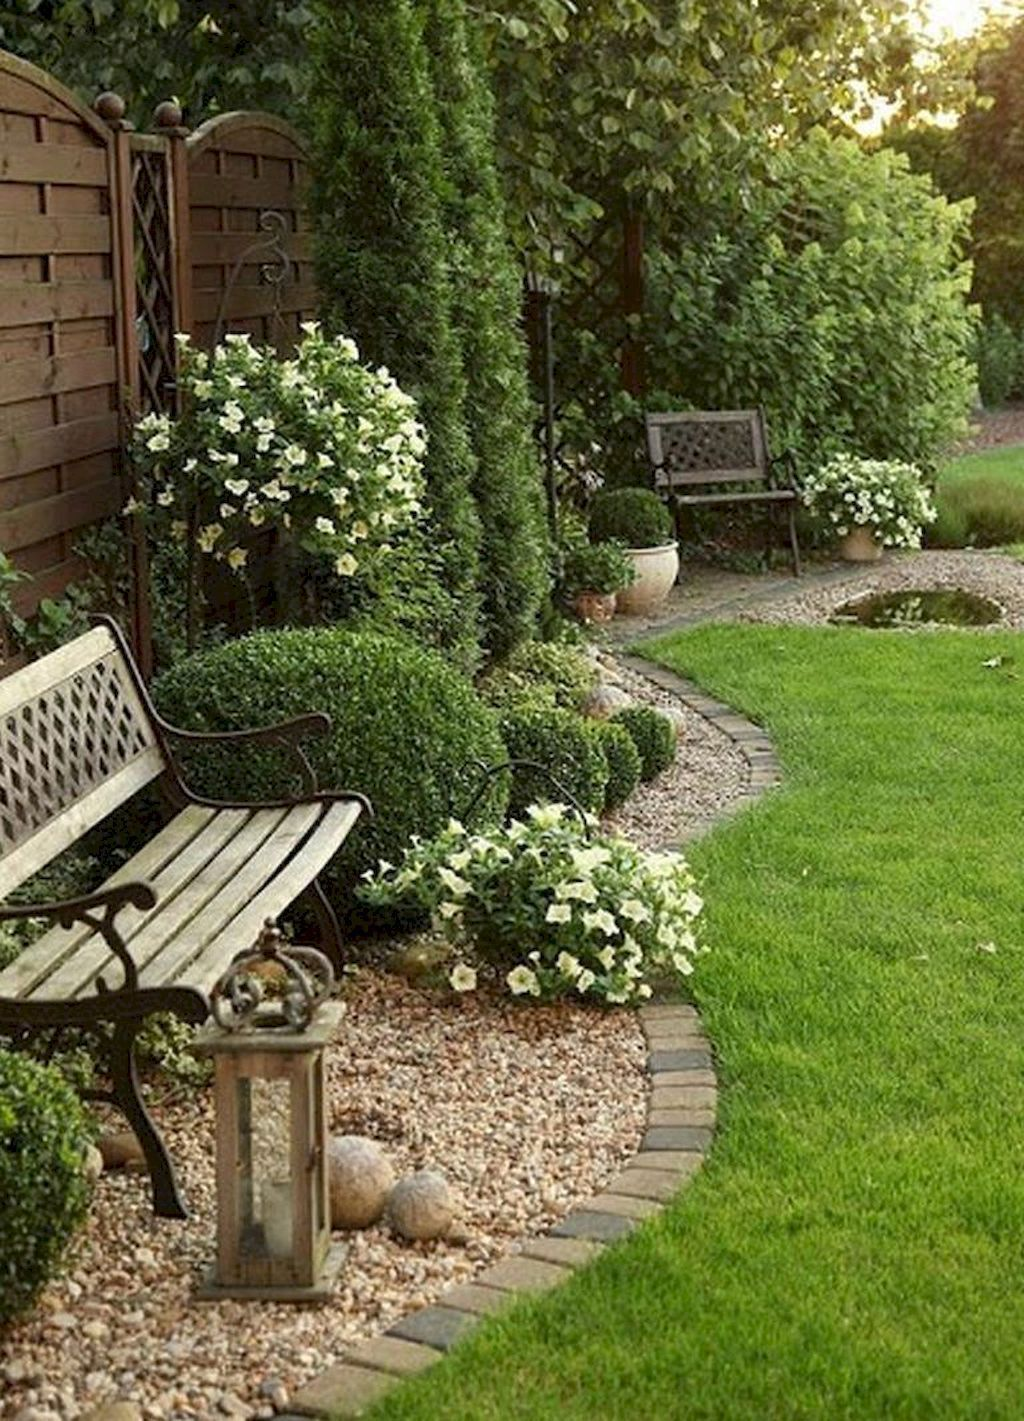 10 Pinterest Lawn And Garden Ideas Most Of The Awesome And Also Gorgeous Front Yard Landscaping Design Porch Landscaping Courtyard Landscaping